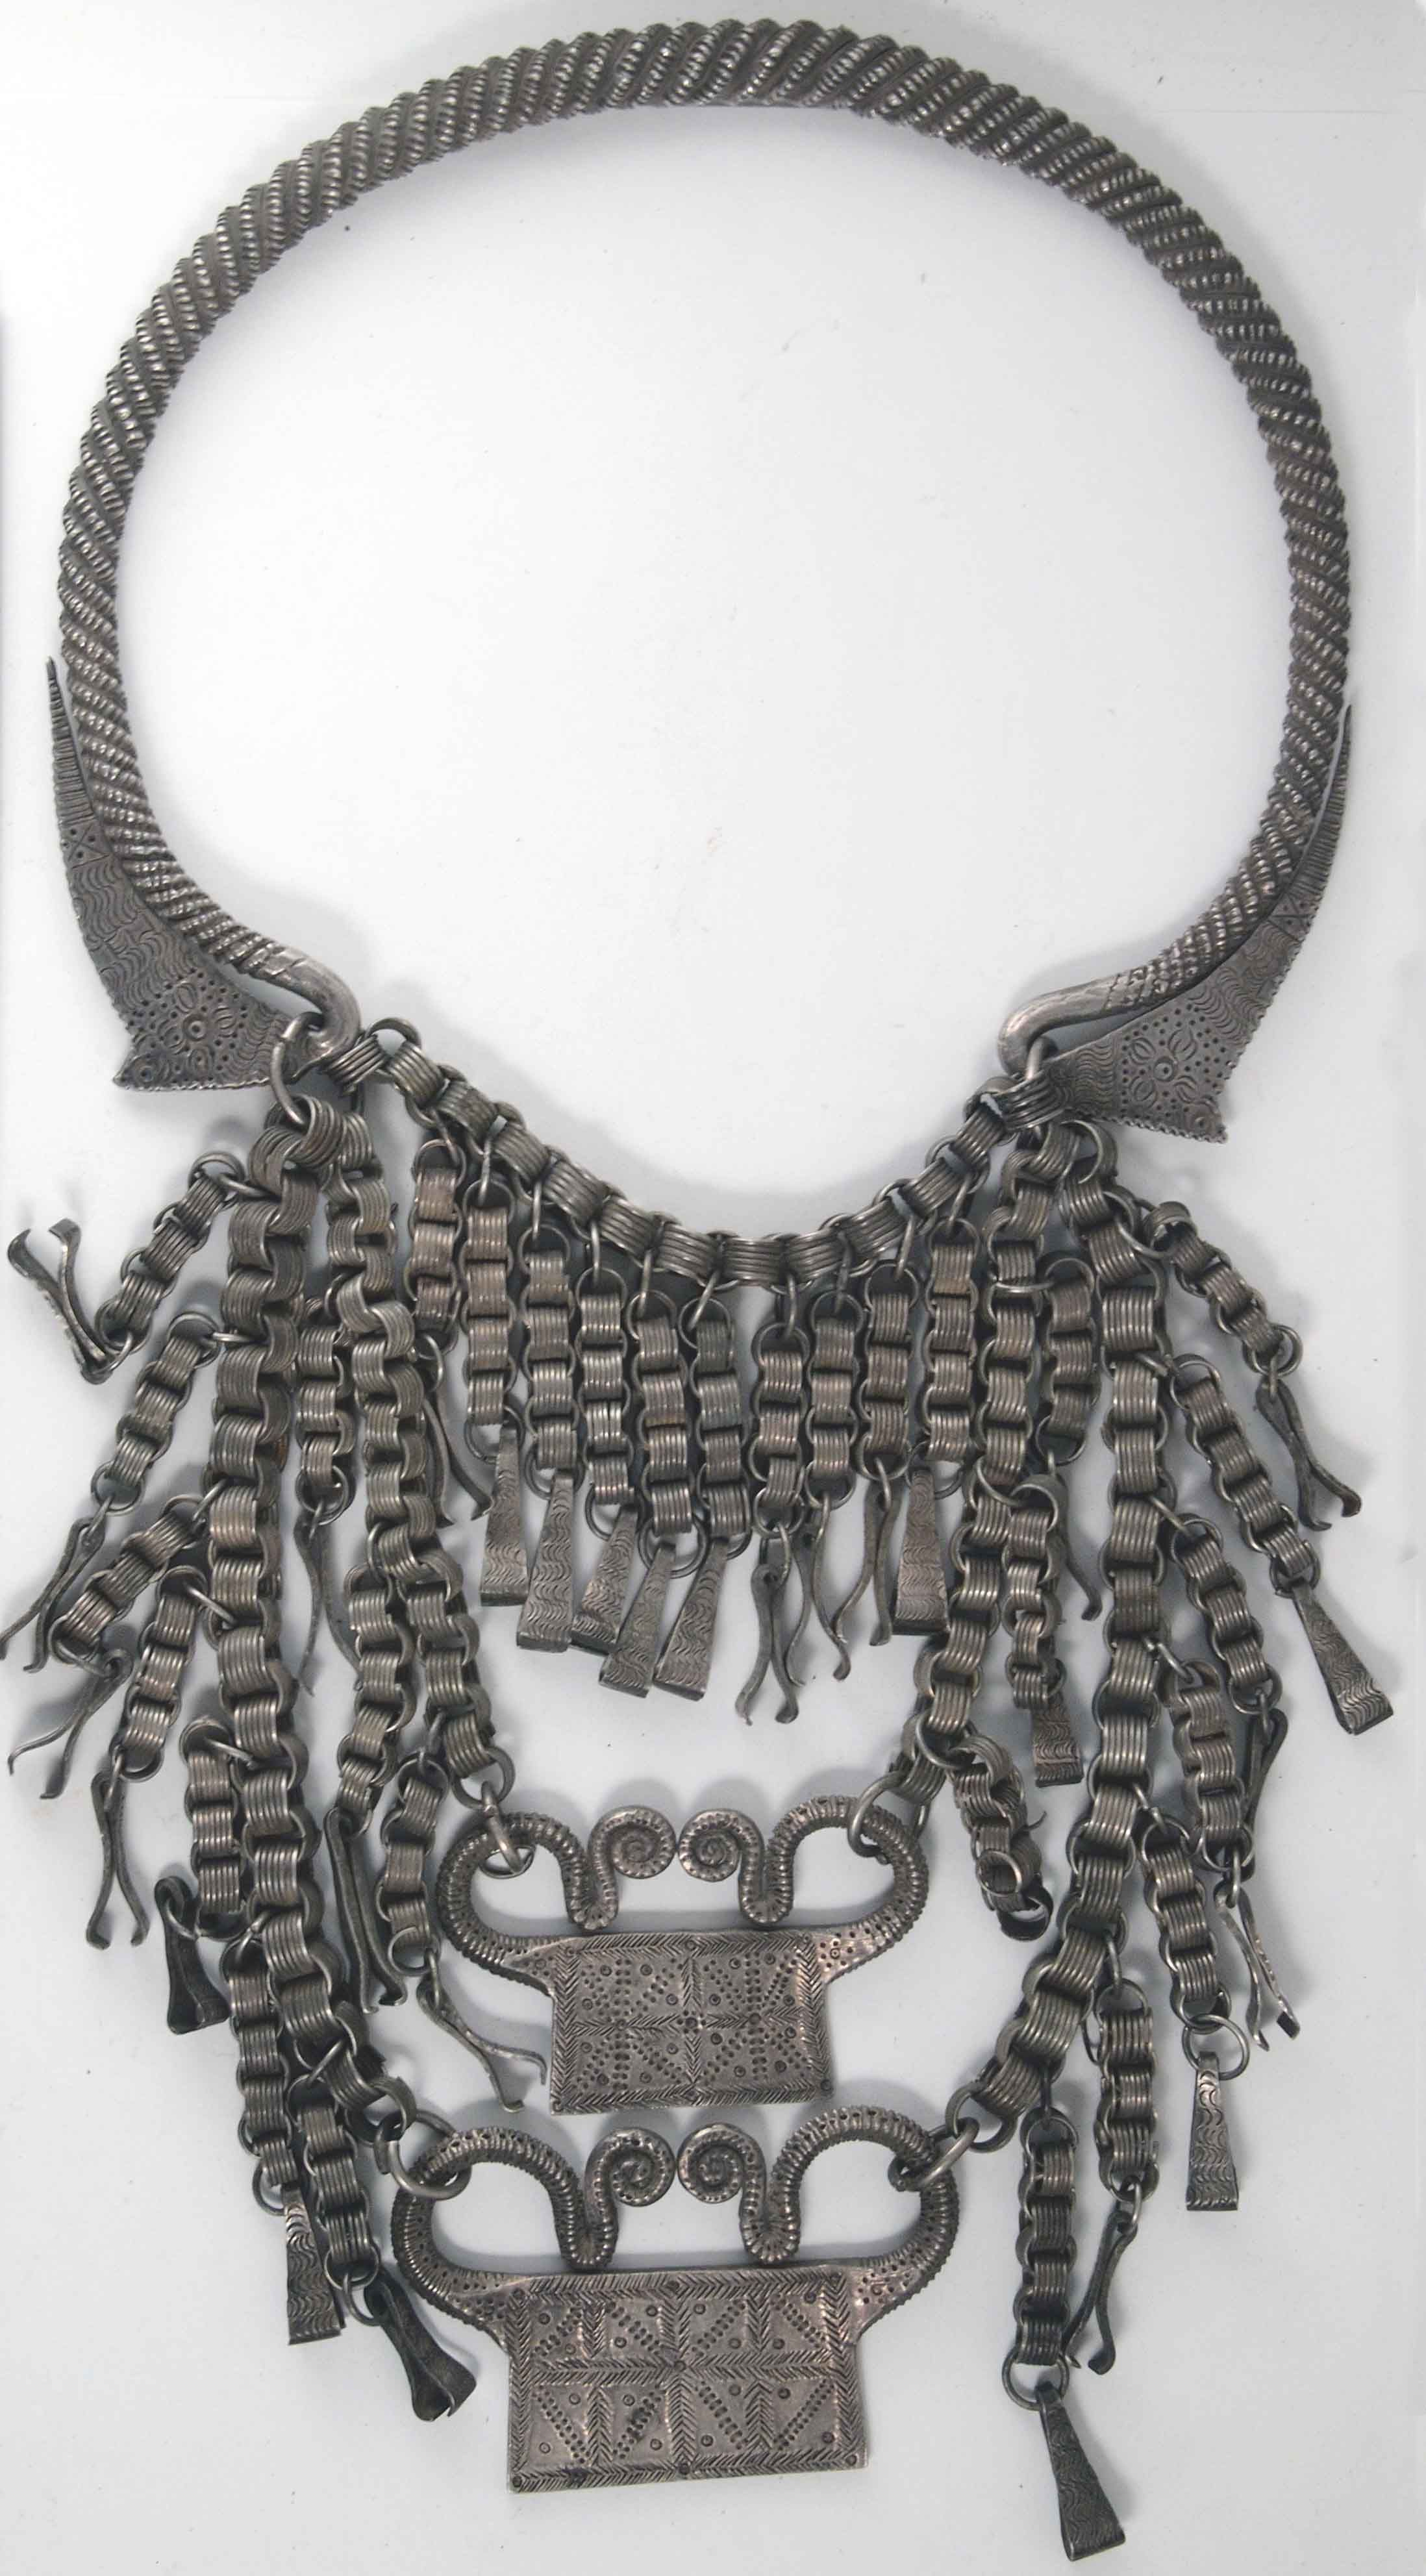 Lock Hmong Design Necklaces Locks - Year of Clean Water